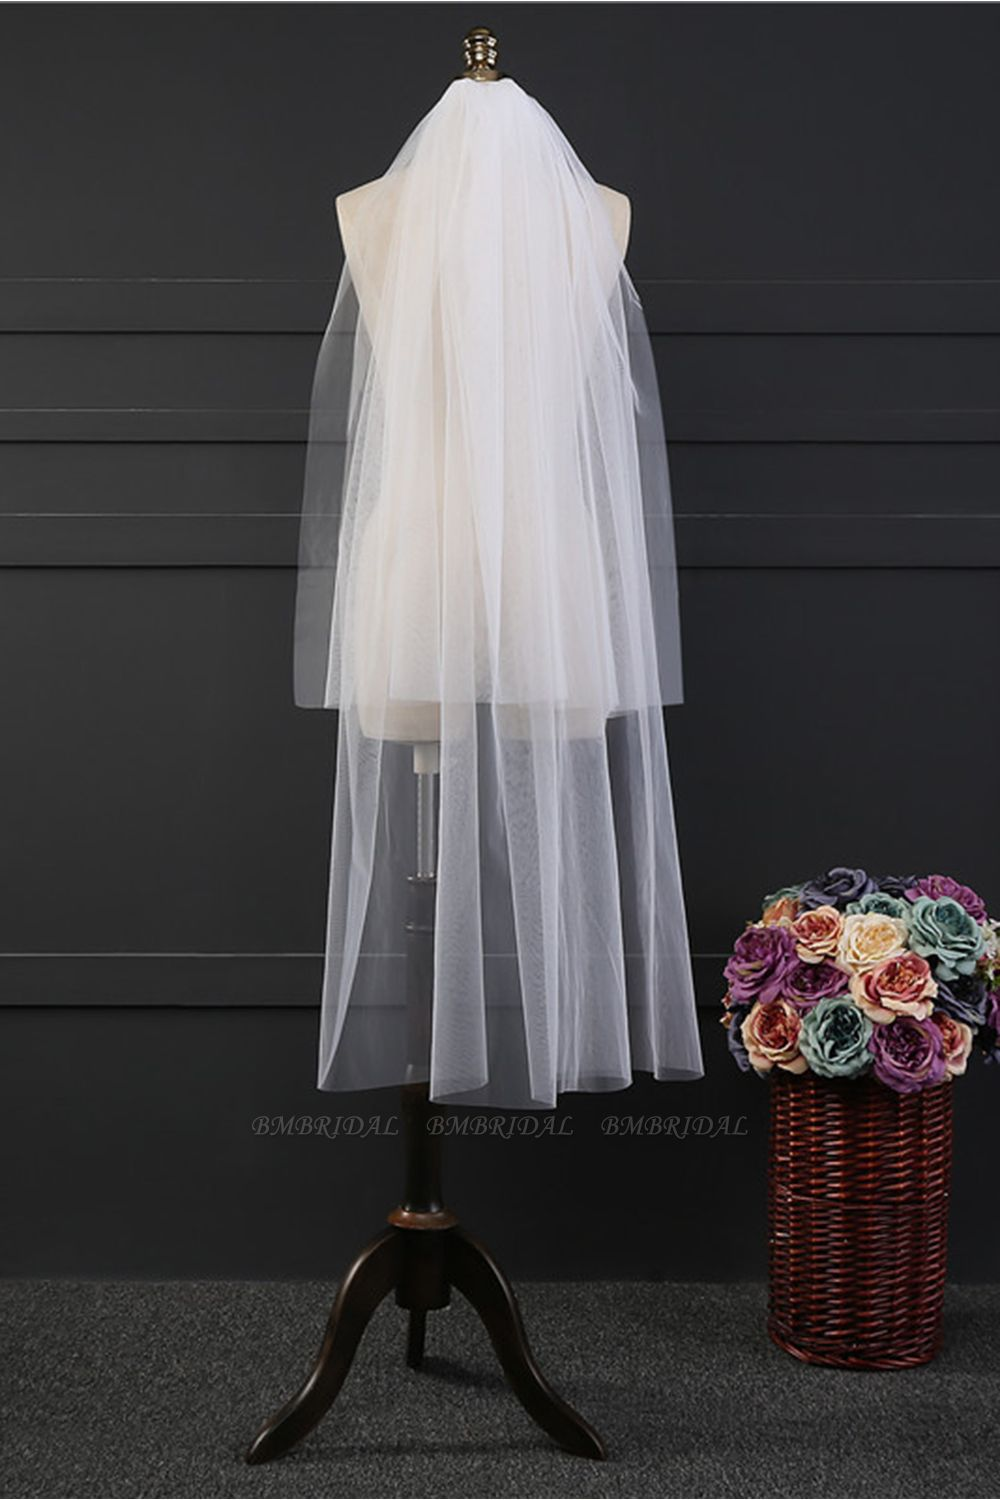 BMbridal Affordable Tulle Cut Edge Wedding Veil